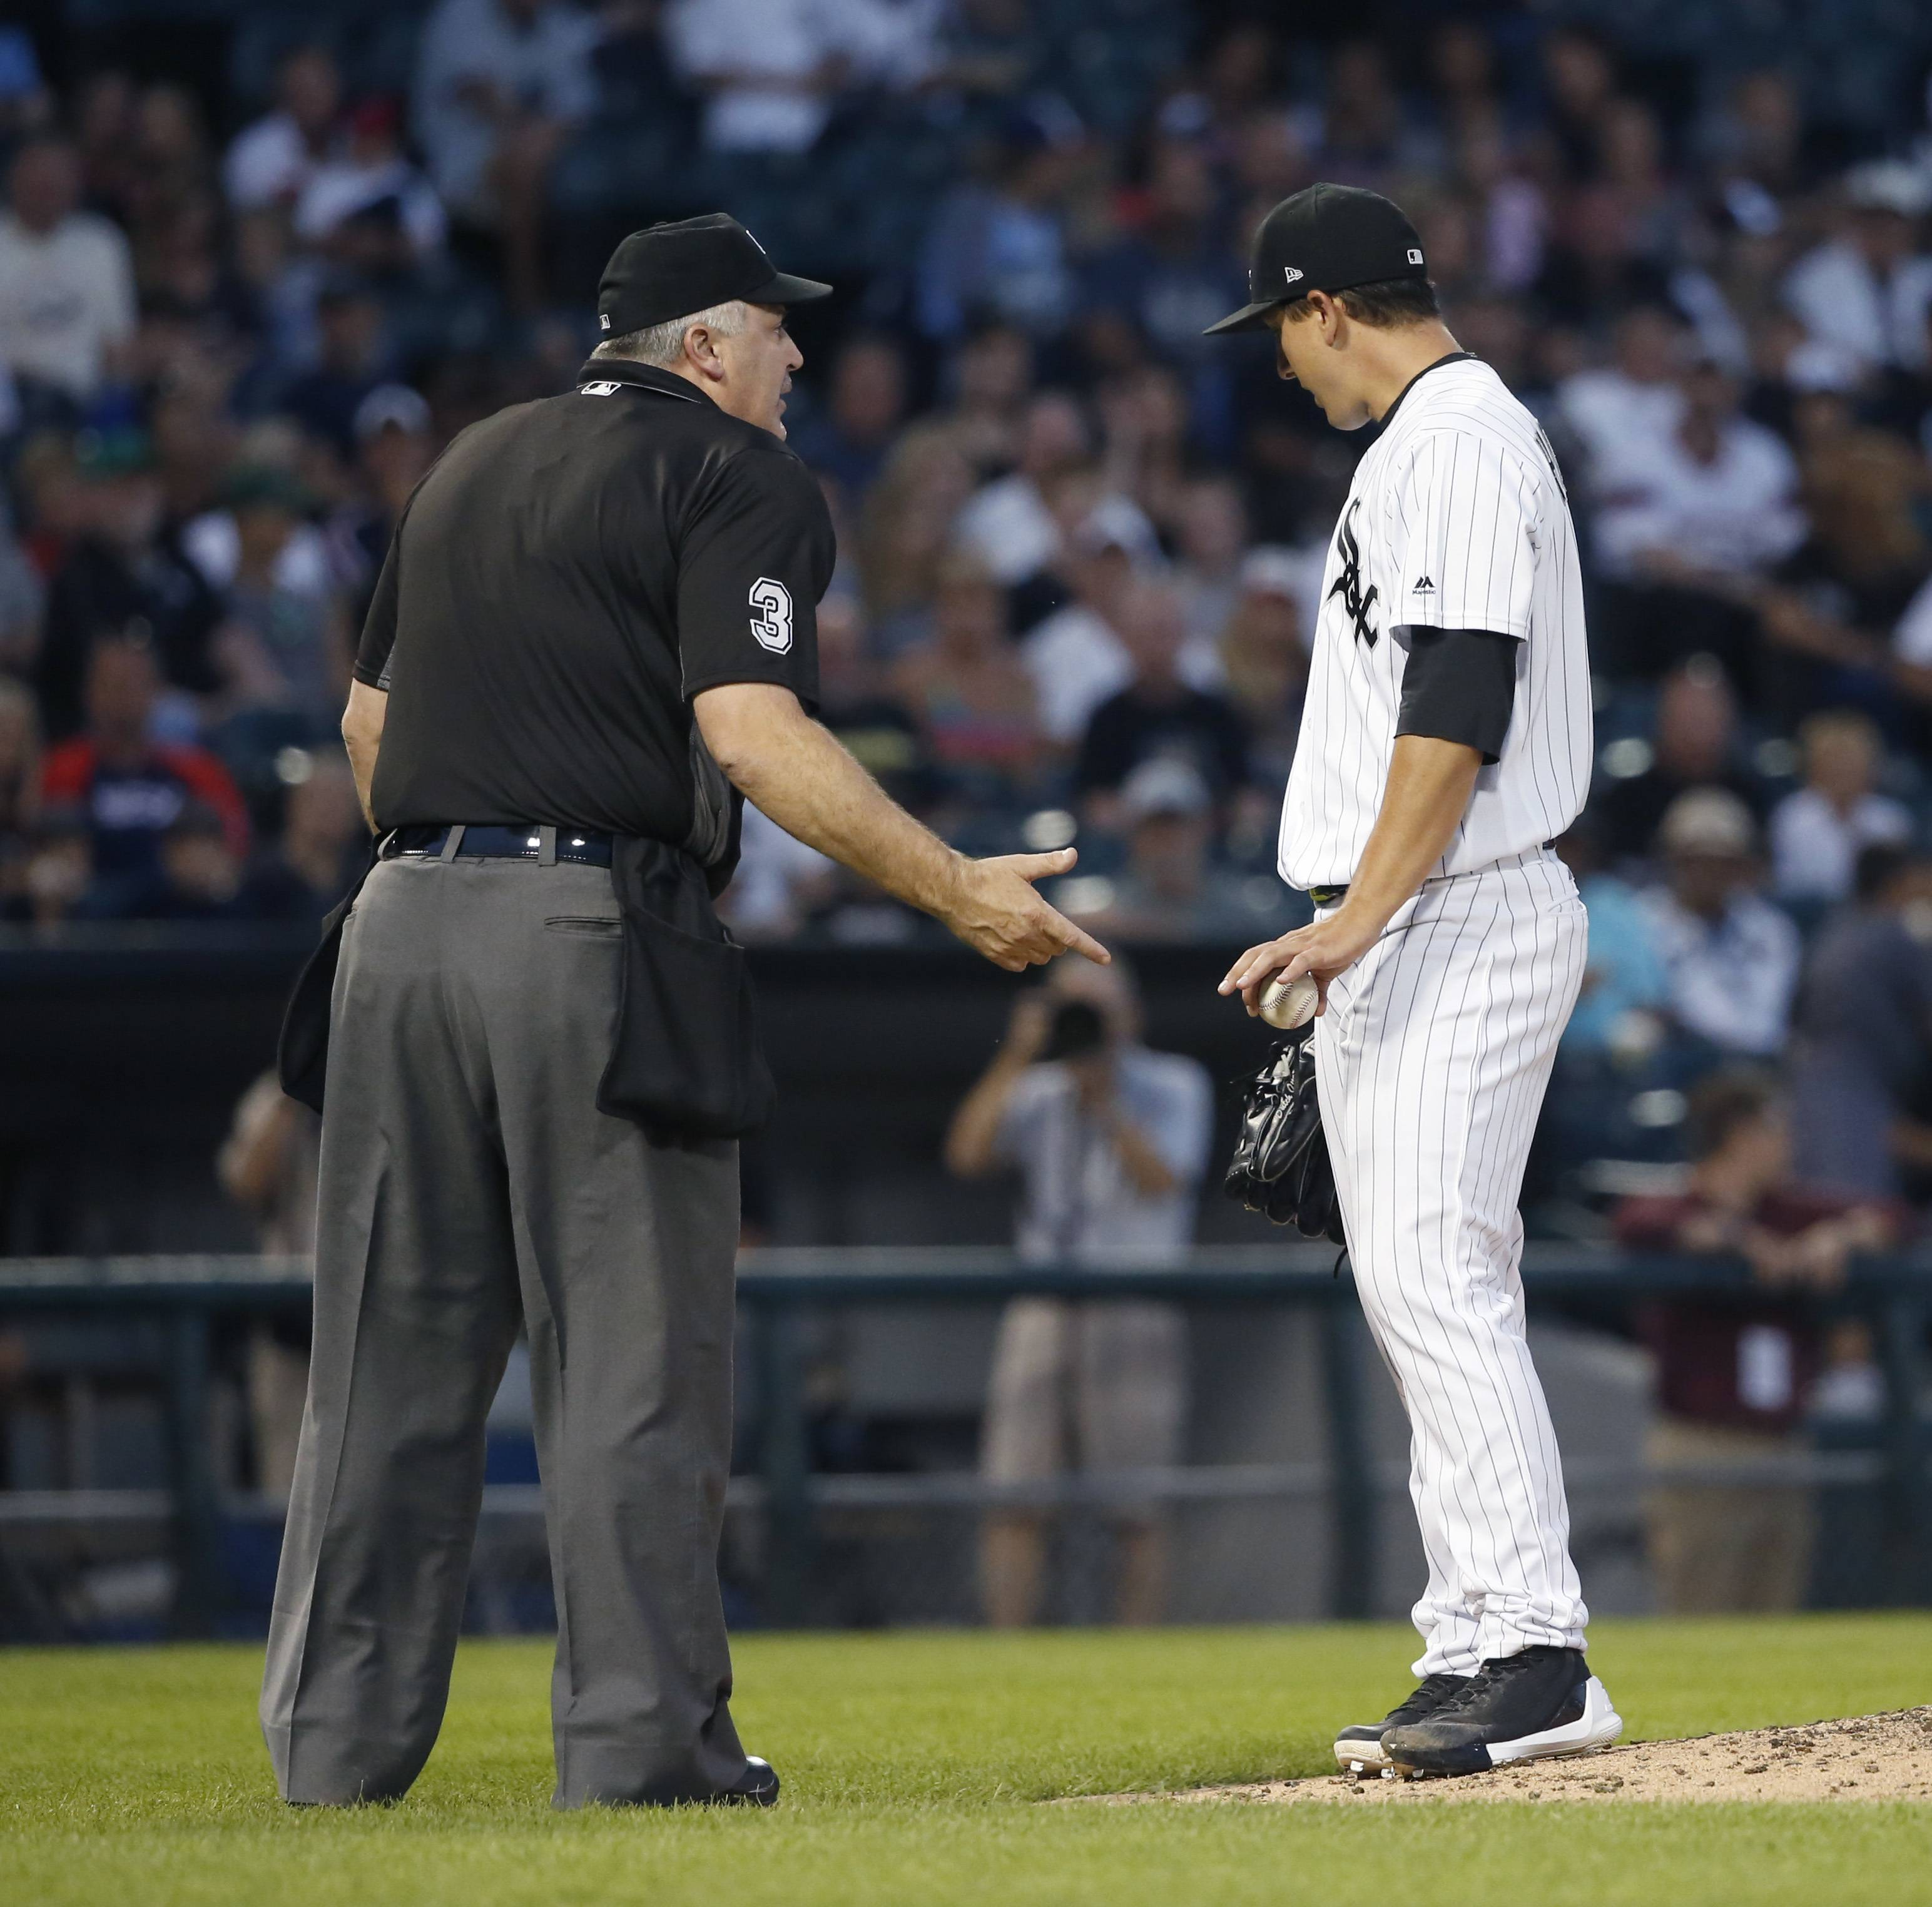 Home plate umpire Bill Welke, left, comes to the mound to talk with Chicago White Sox starting pitcher Derek Holland during the fourth inning of Chicago's baseball game against the Cleveland Indians on Friday, July 28, 2017, in Chicago. (AP Photo/Charles Rex Arbogast)